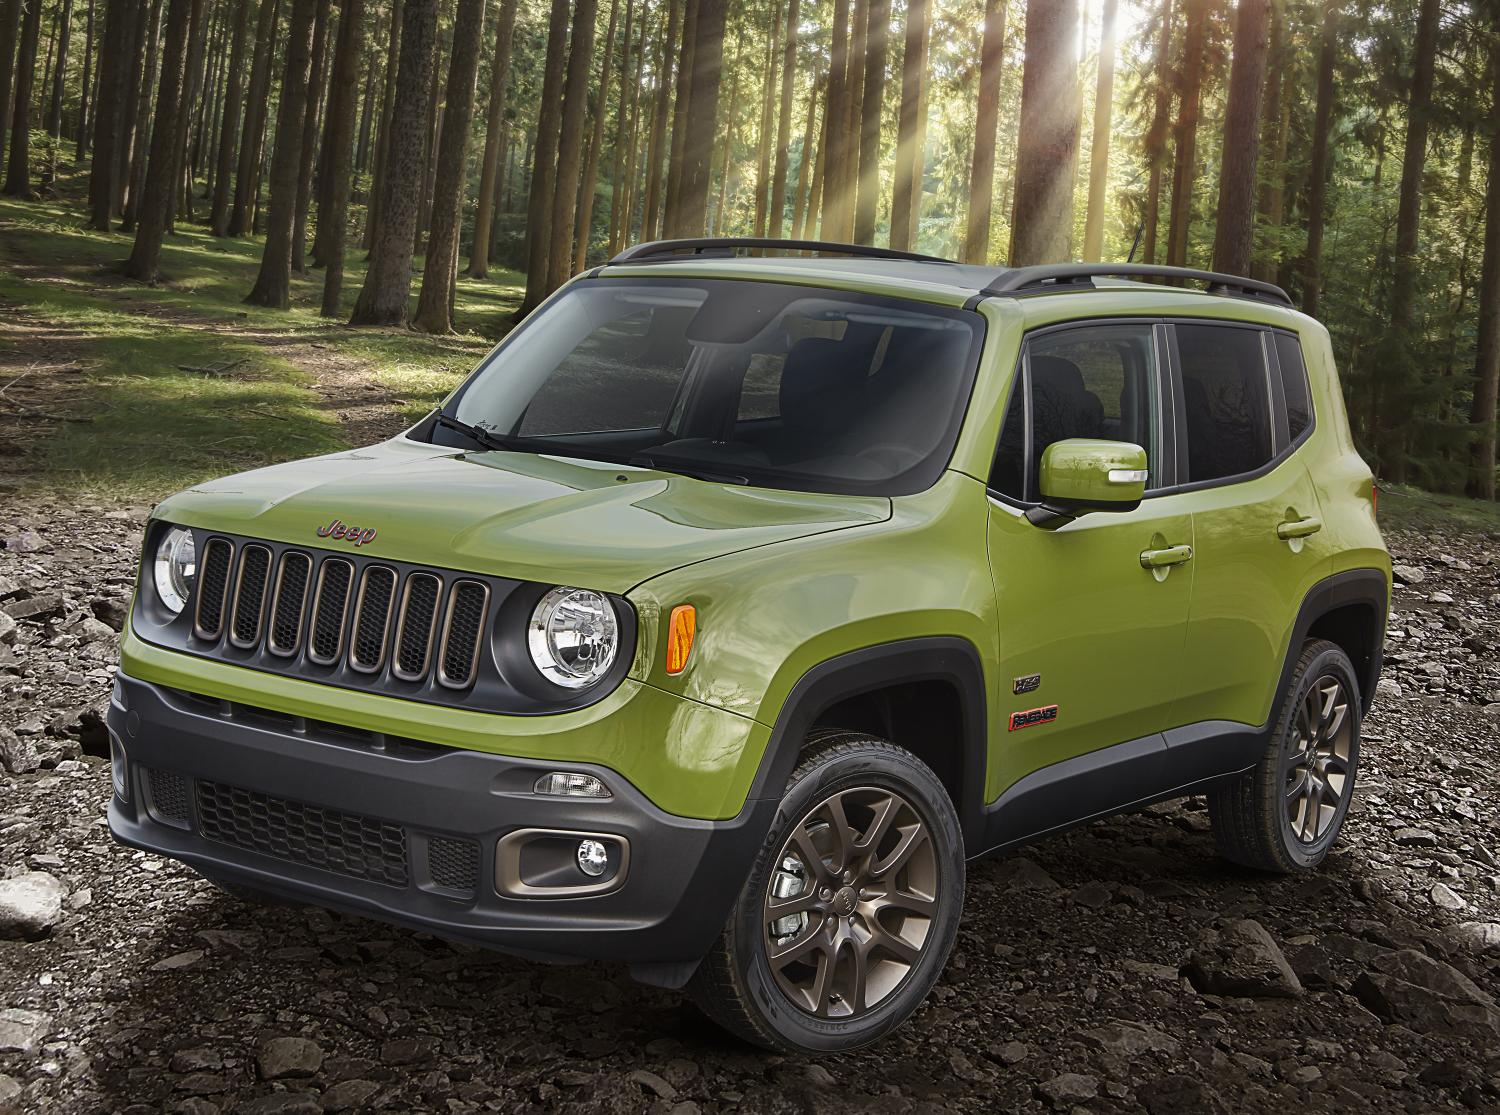 75th anniversary Jeep Renegade pictured in Jungle Green